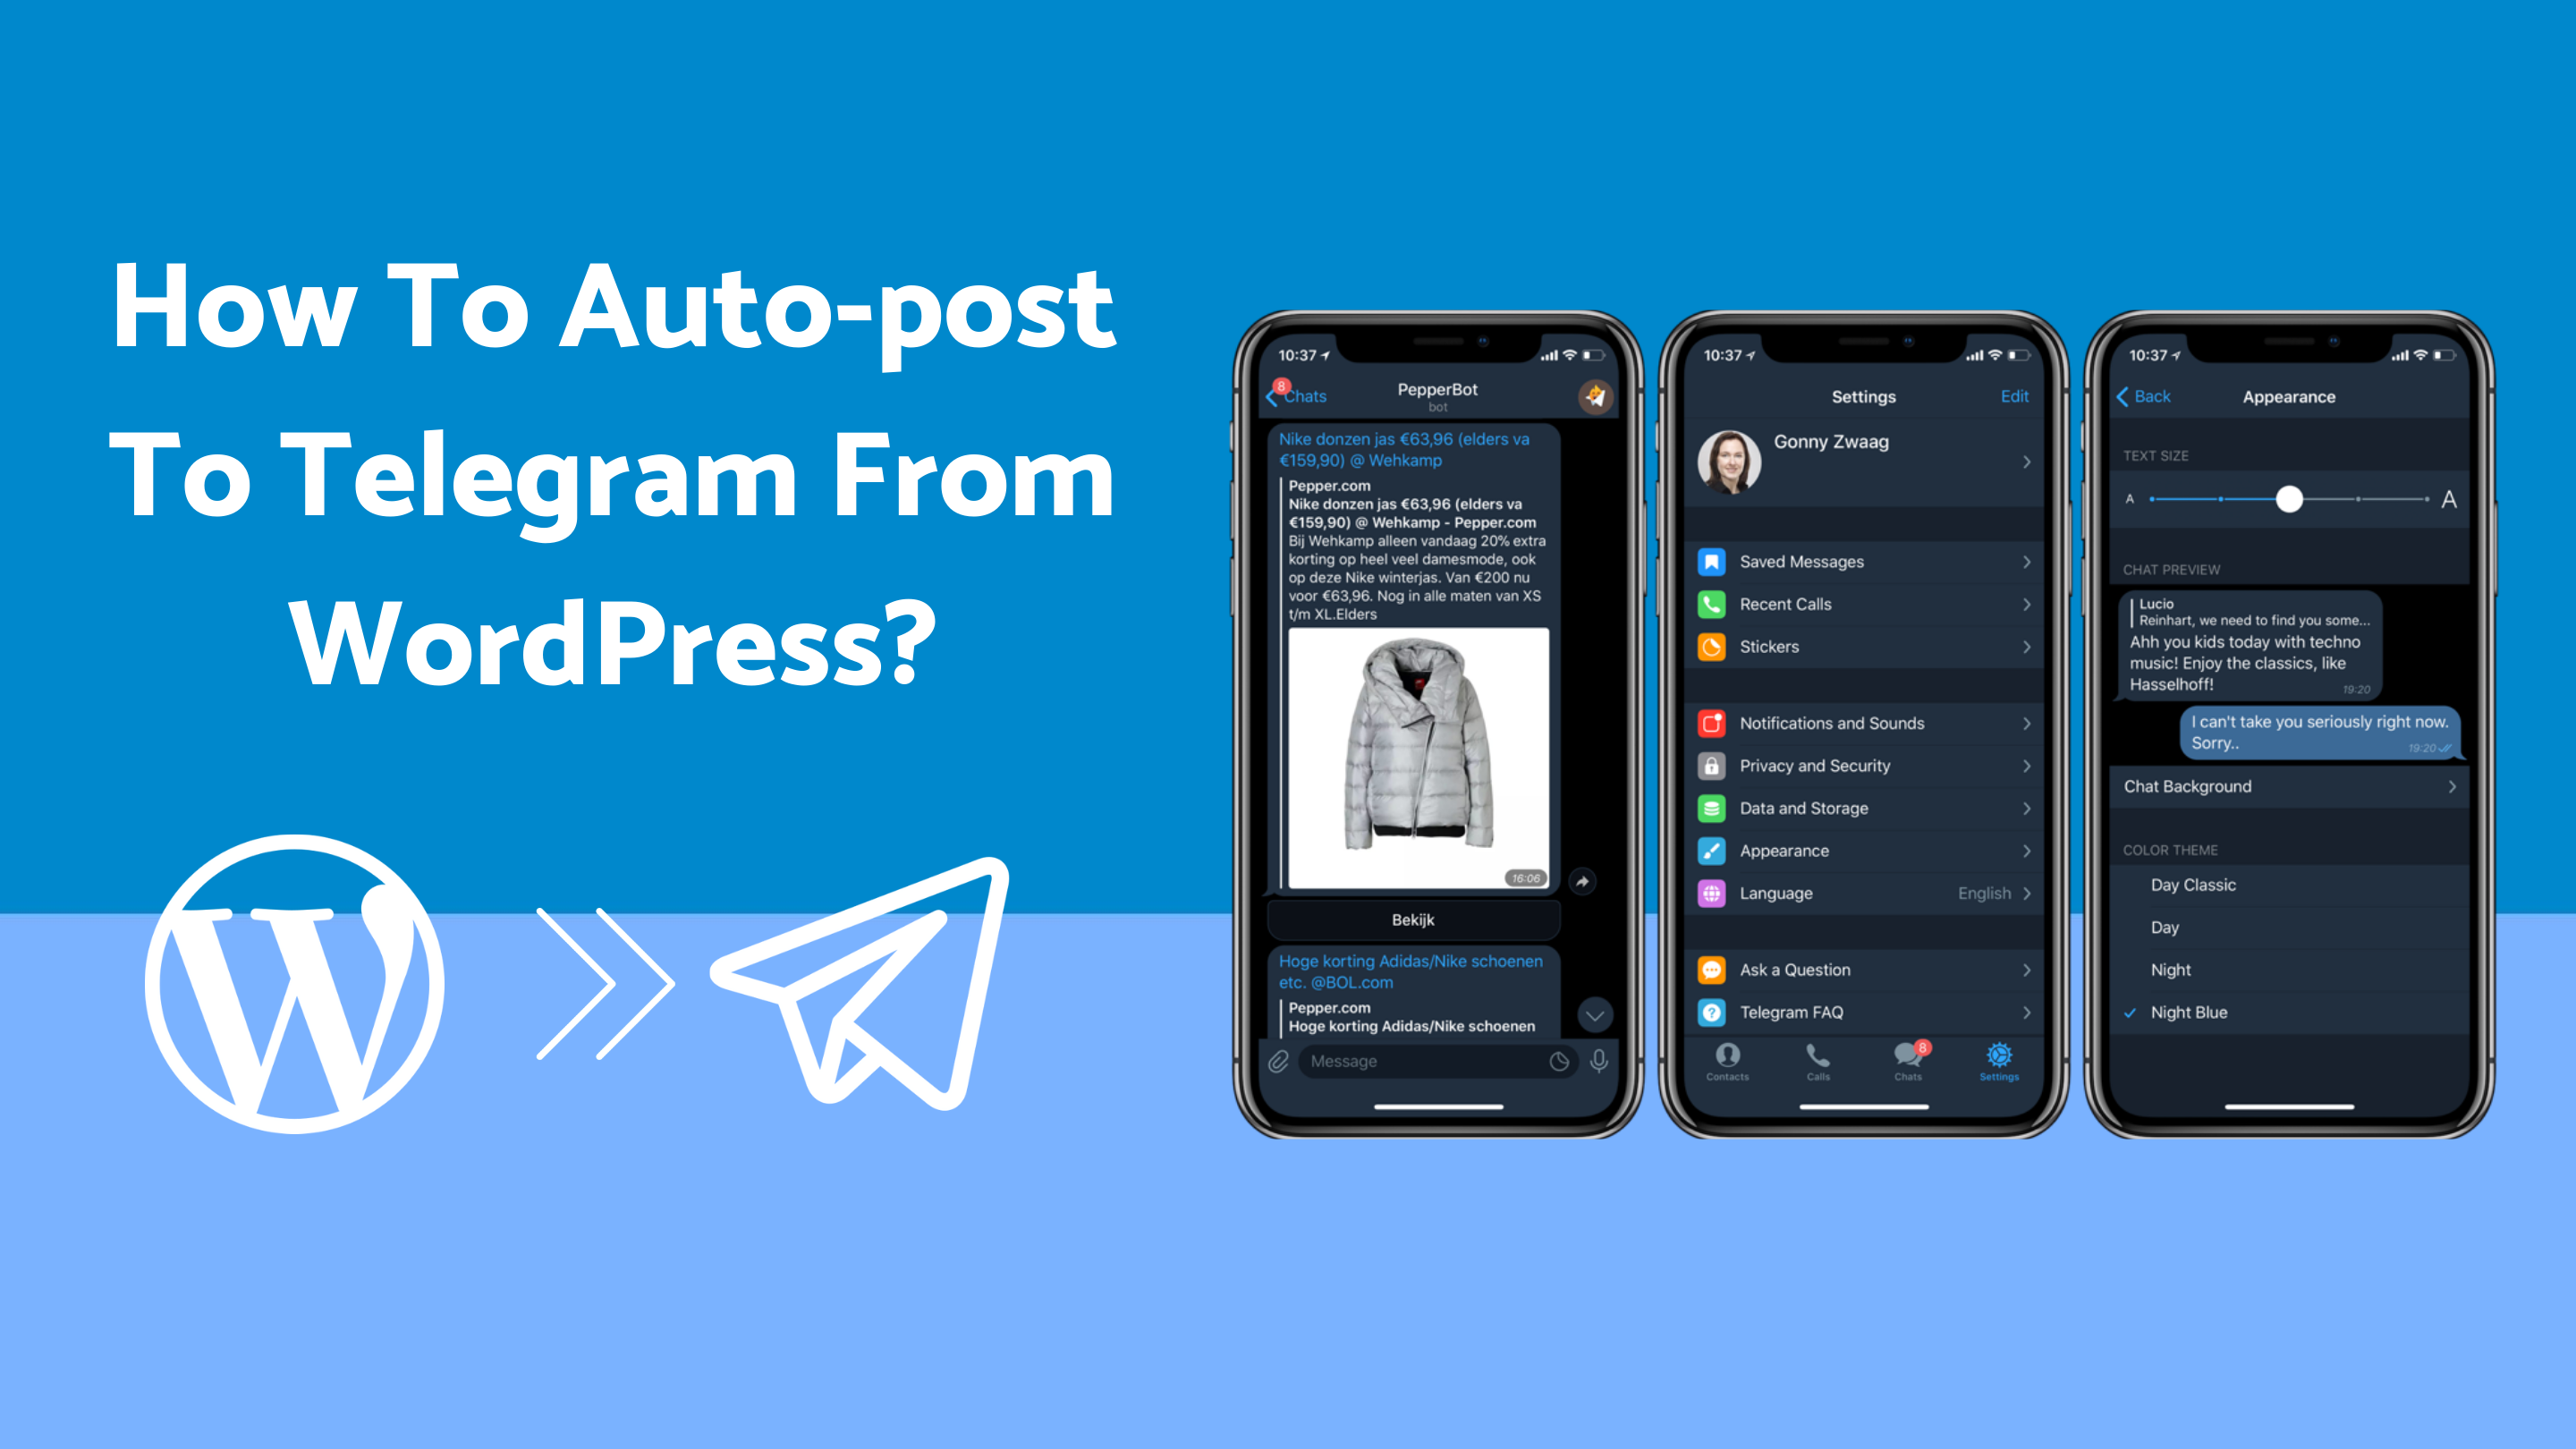 How To Auto-Post To Telegram From WordPress [A Complete Guide]